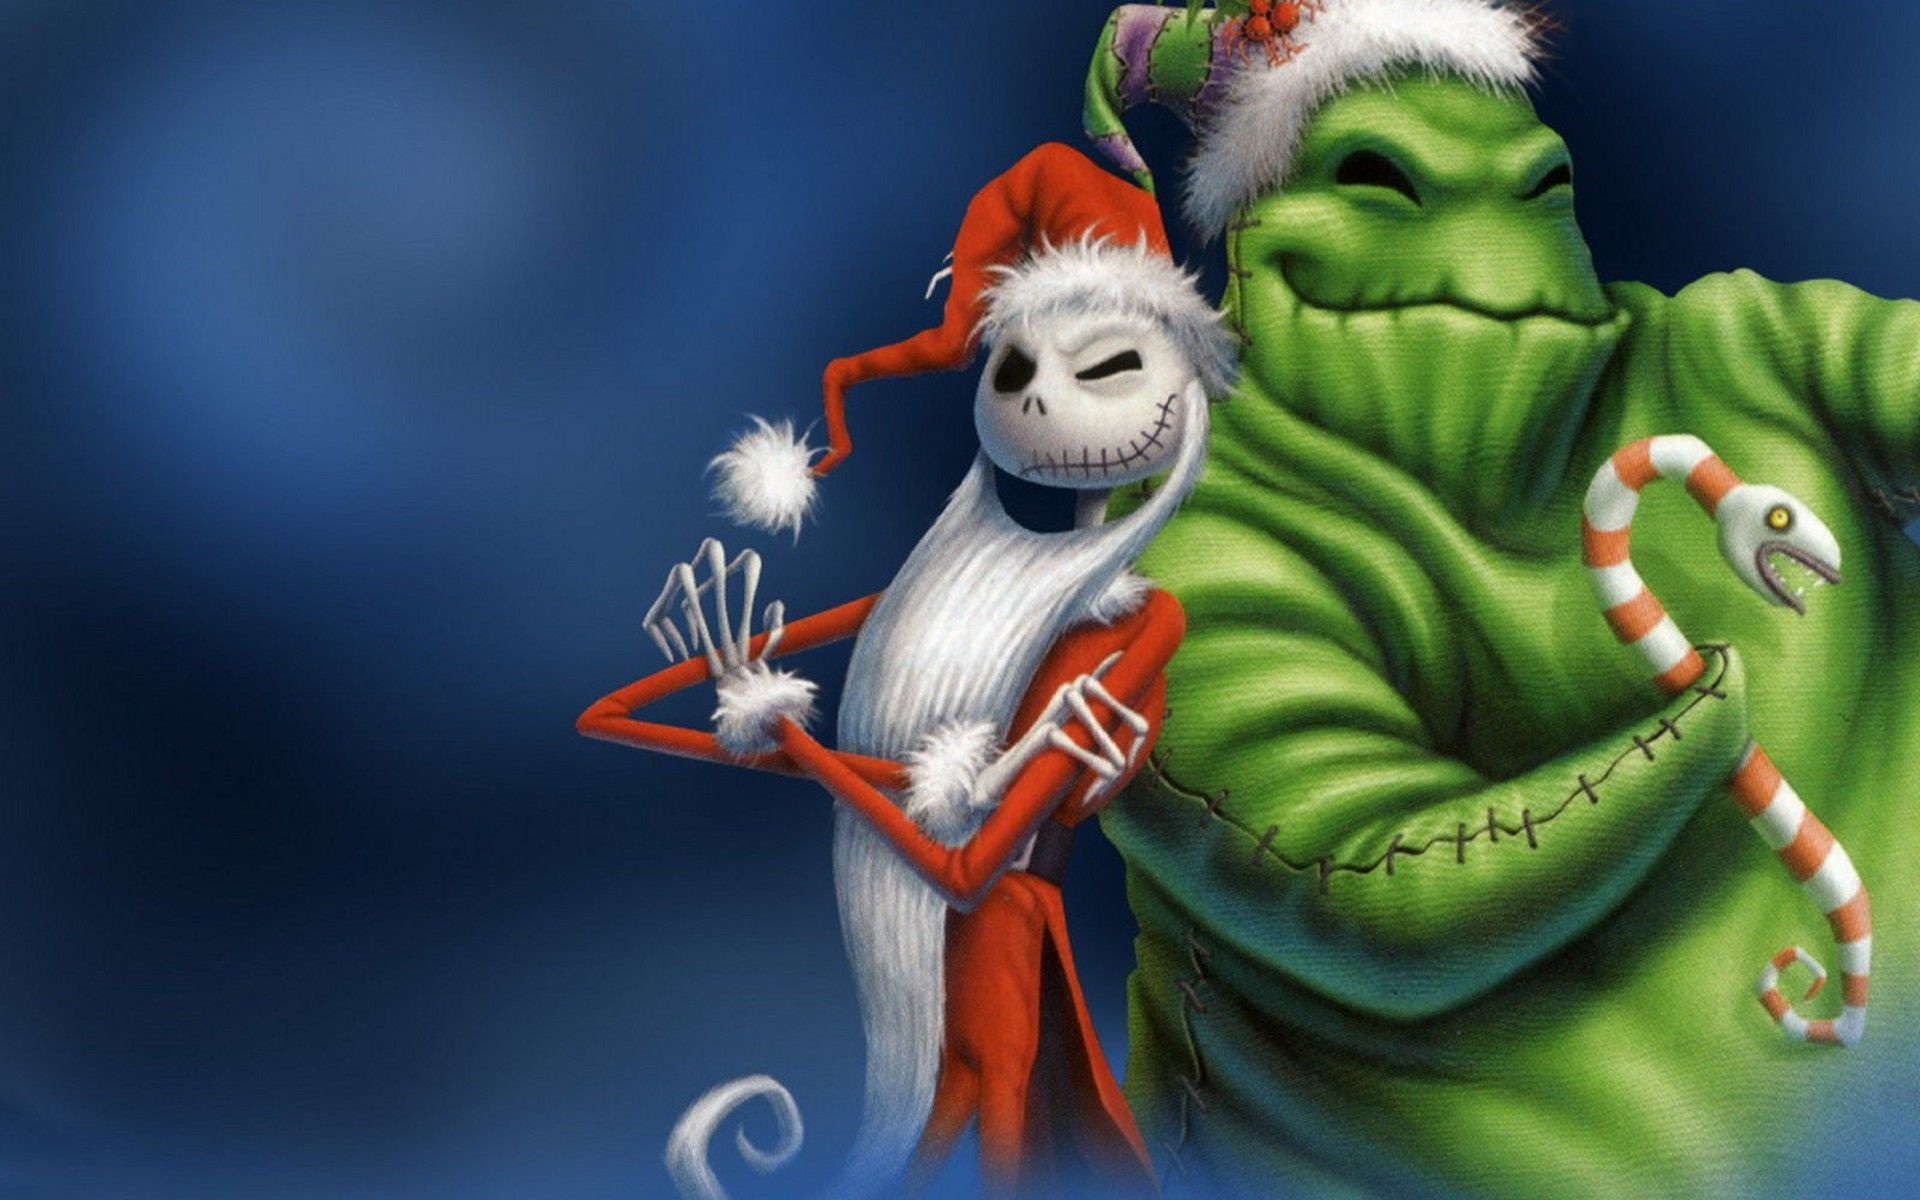 Nightmare Before Christmas Wallpapers Hd Wallpapers Backgrou Nightmare Before Christmas Wallpaper Nightmare Before Christmas Jack Nightmare Before Christmas